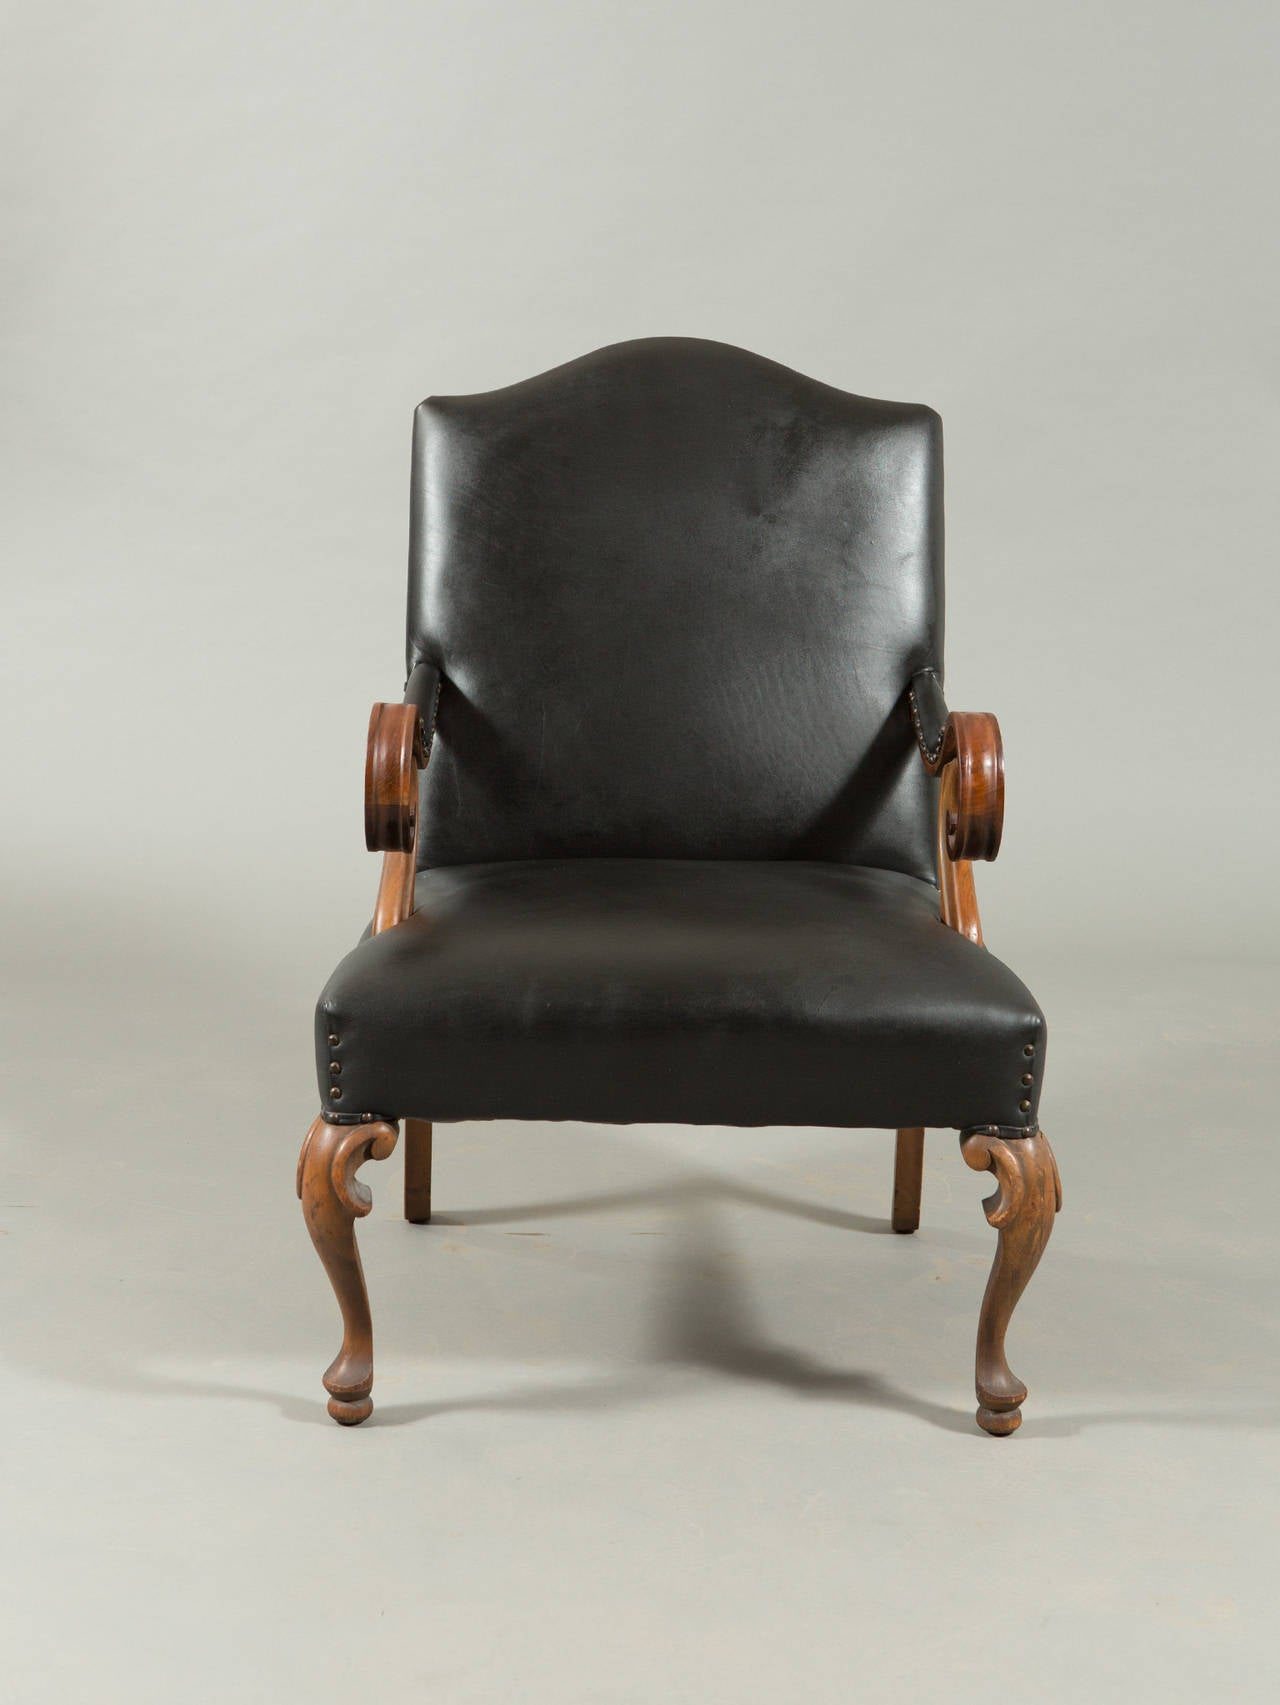 Hand-carved walnut Louis XVIII style armchair with curved wood and tapered legs and brass nailhead trim. Seat depth - 20